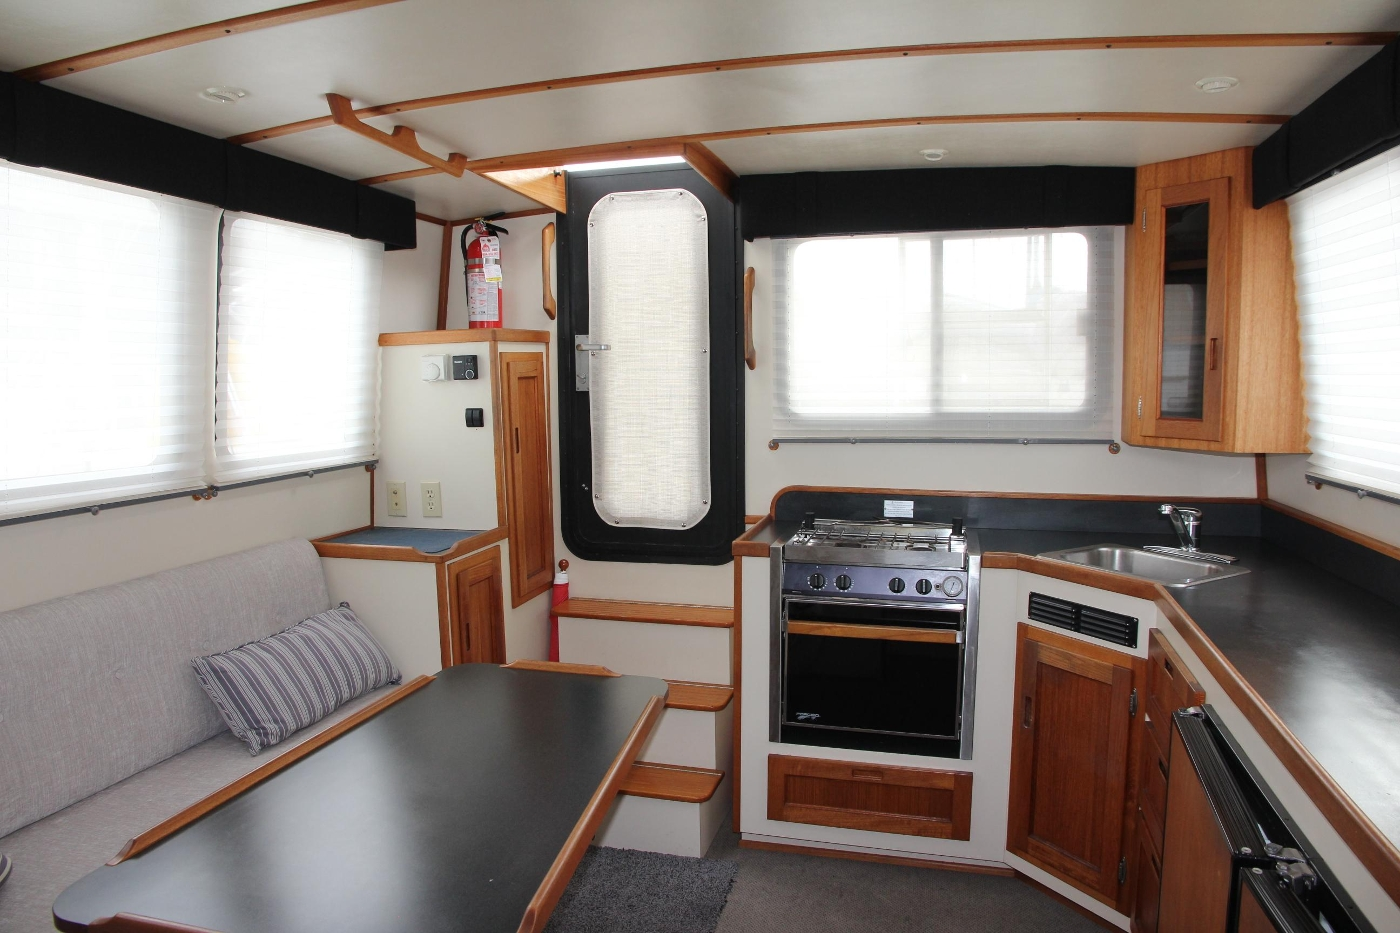 2001 Nordic Tugs 32 Pilothouse, Salon and Galley Looking Aft